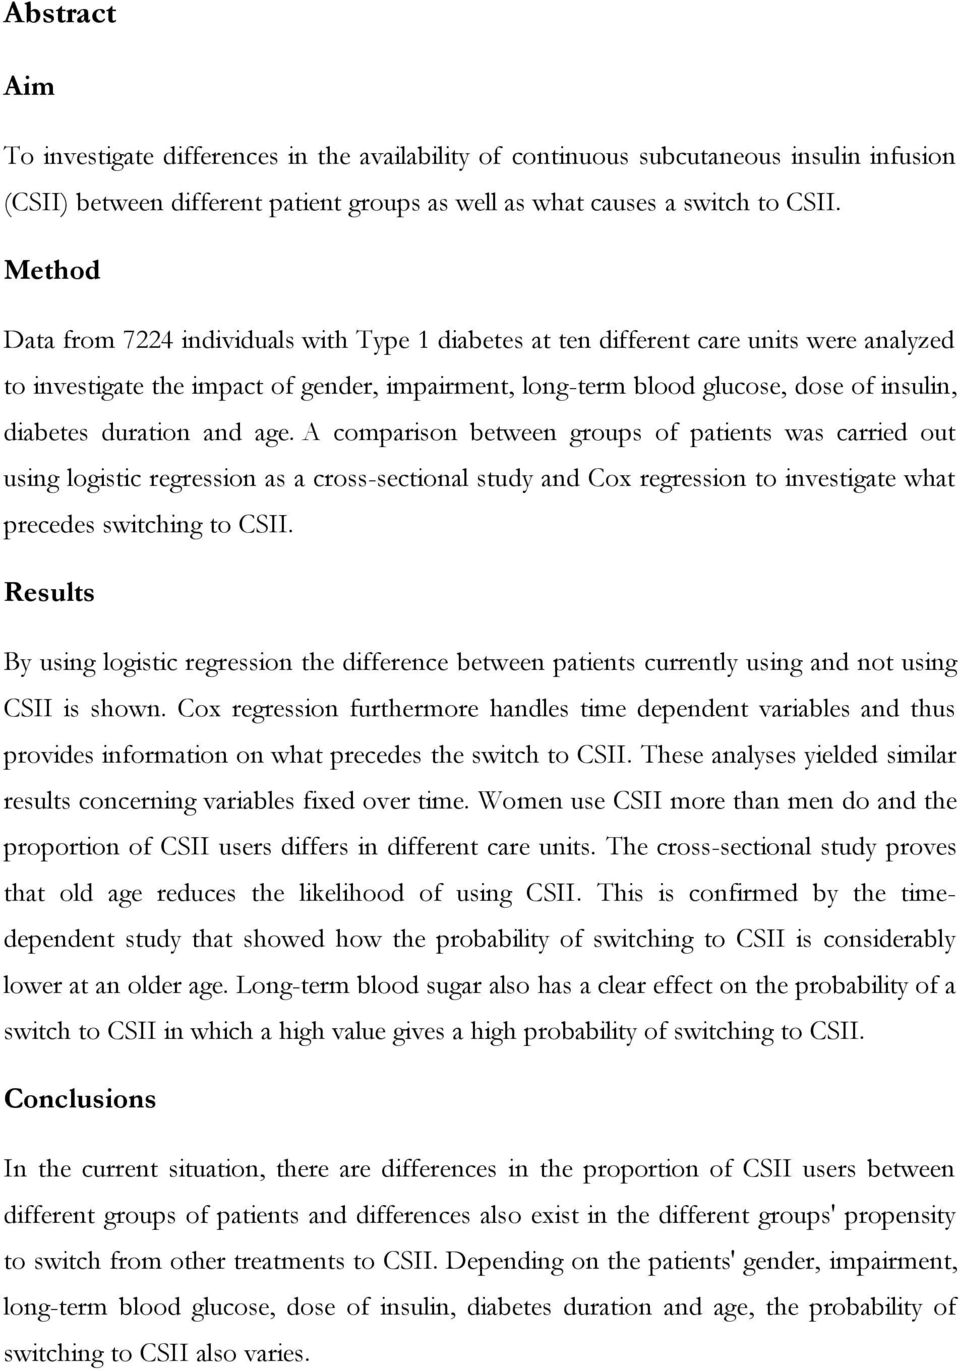 duration and age. A comparison between groups of patients was carried out using logistic regression as a cross-sectional study and Cox regression to investigate what precedes switching to CSII.